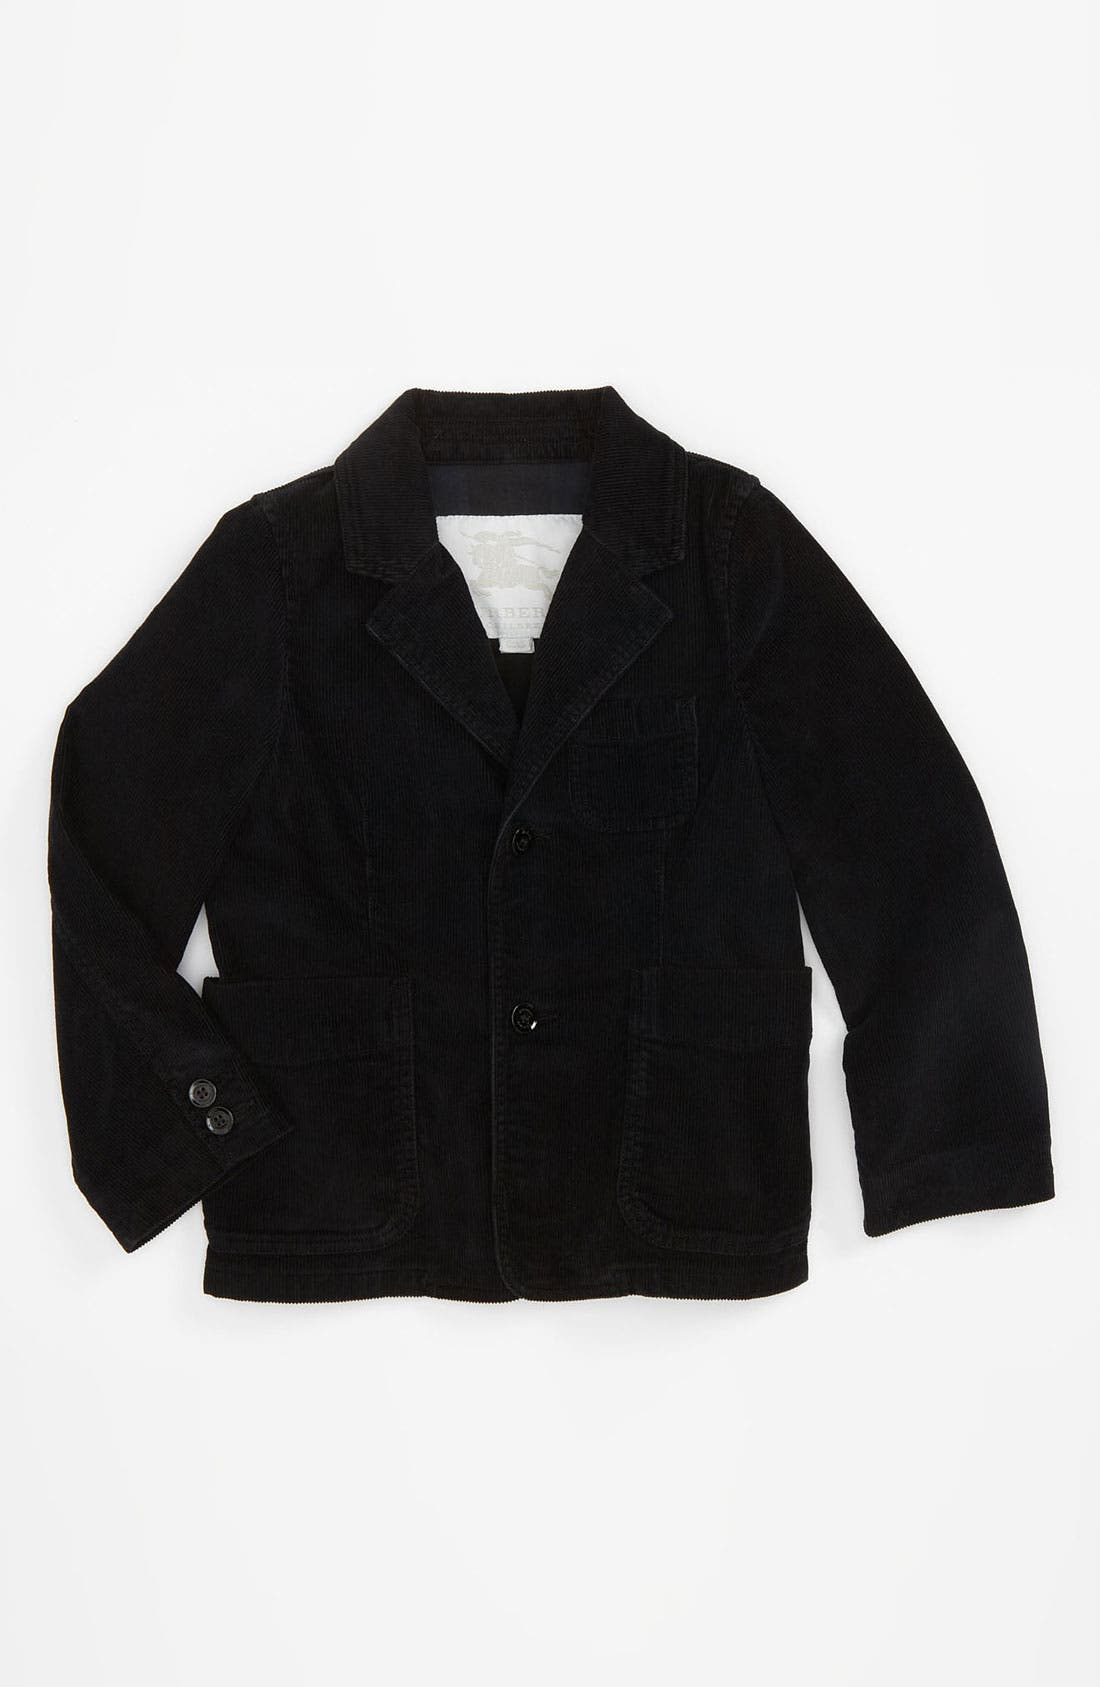 Main Image - Burberry Tailored Corduroy Jacket (Infant)